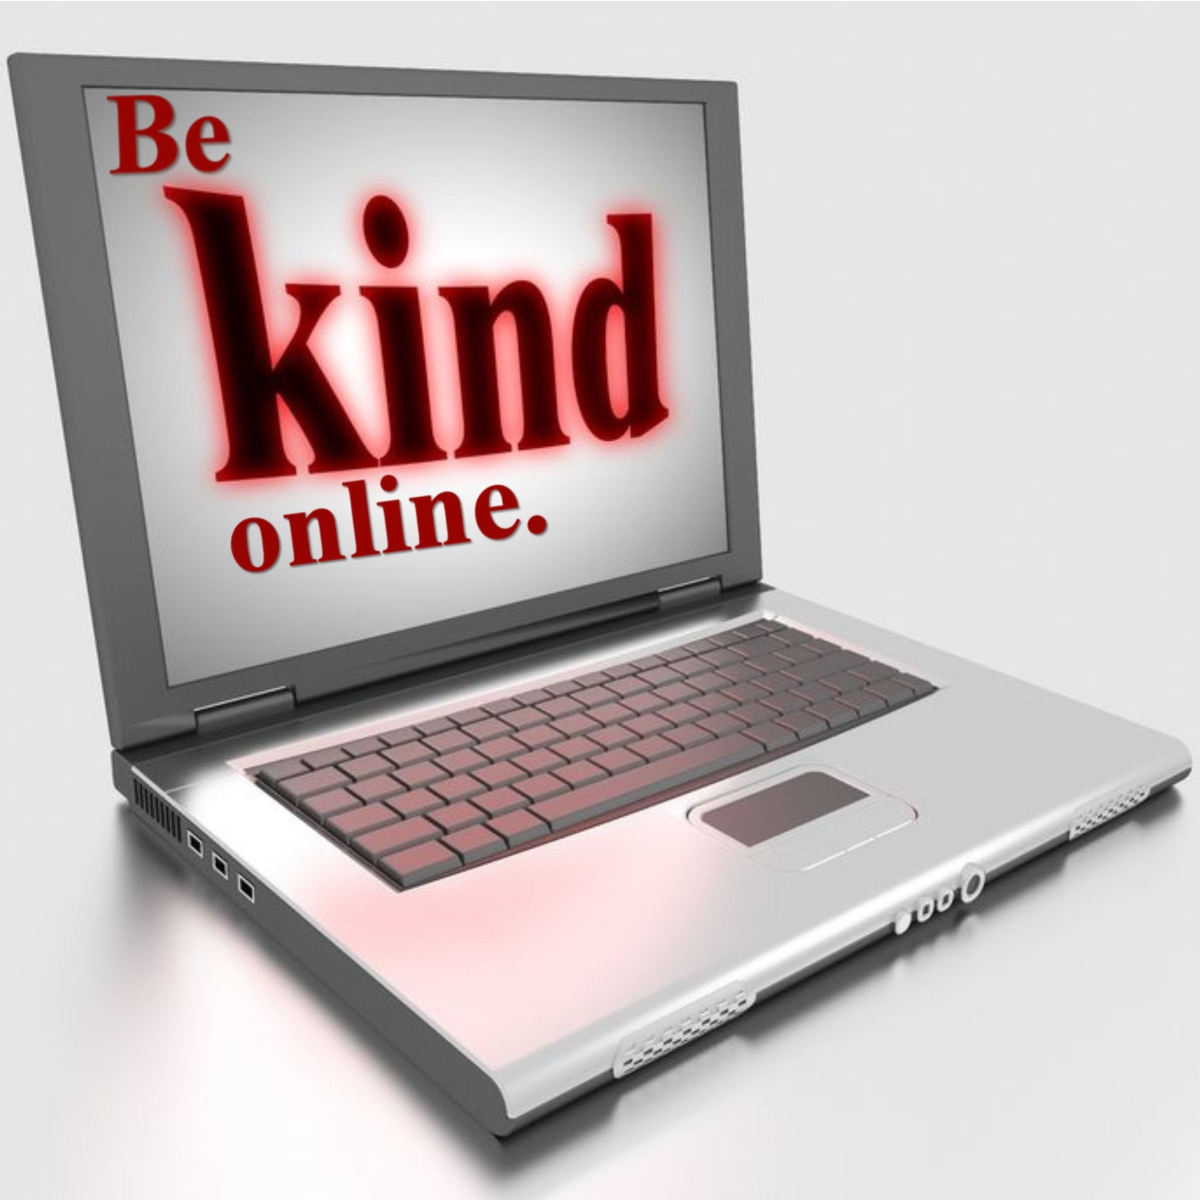 Image result for being kind online